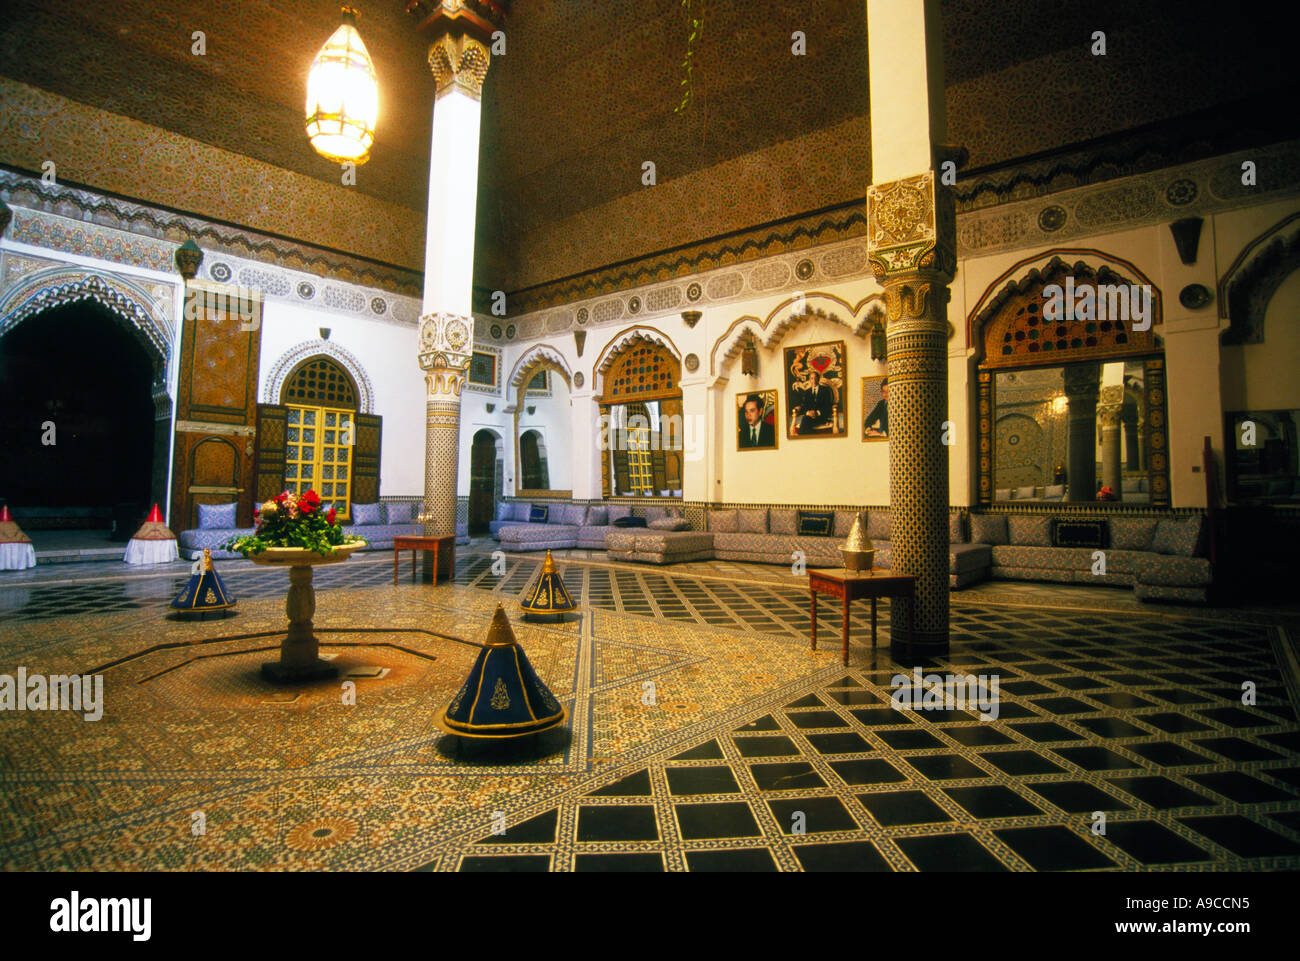 Interior Of A Moroccan Restaurant Fes Stock Photo Alamy